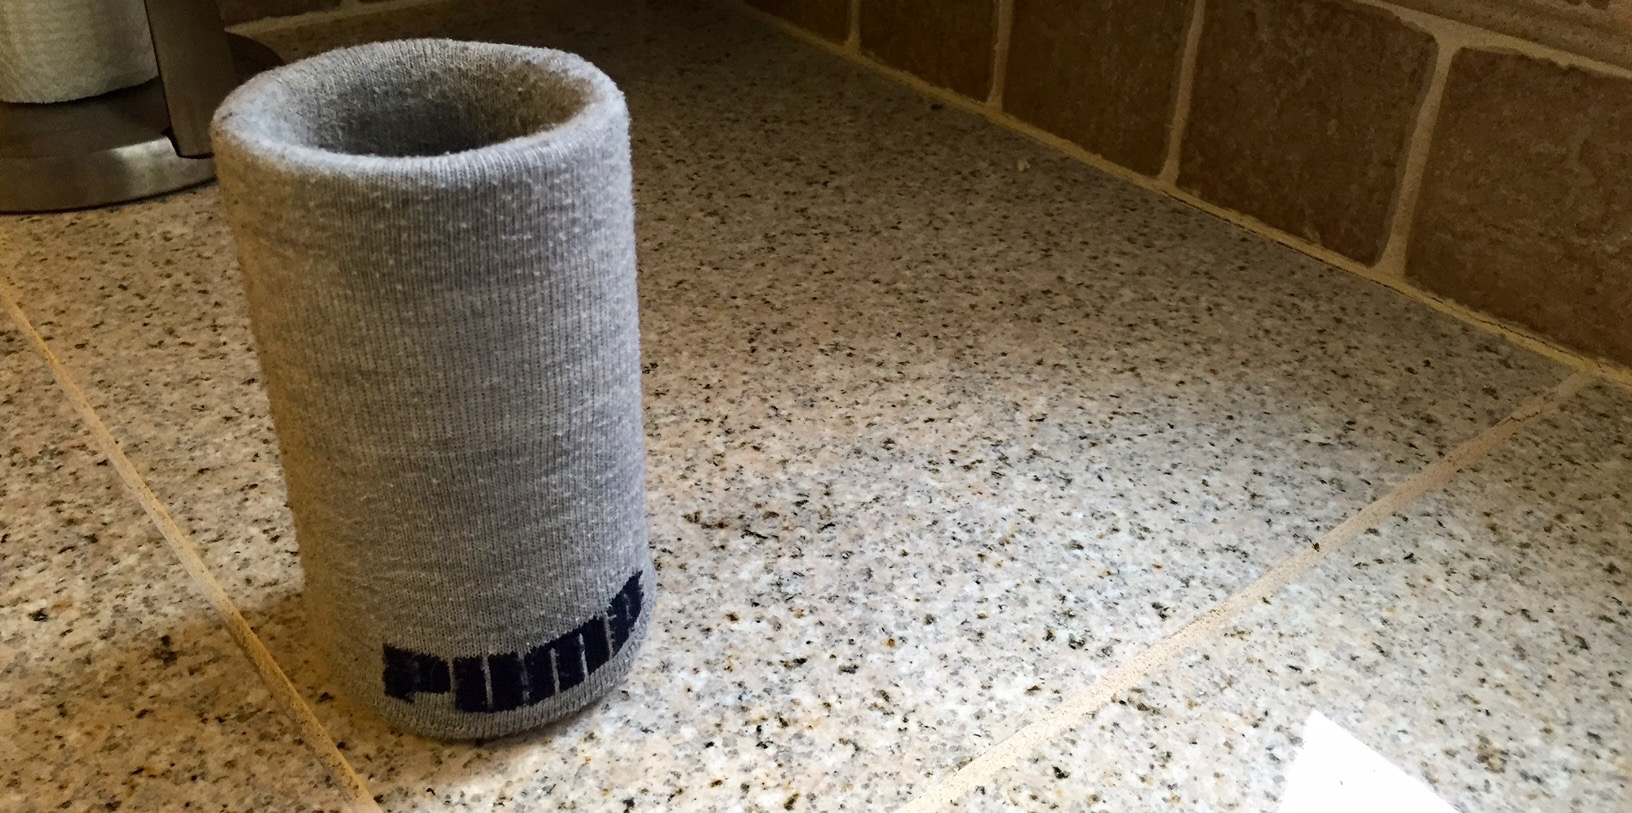 For extra padding, put drinking glasses in clean socks.